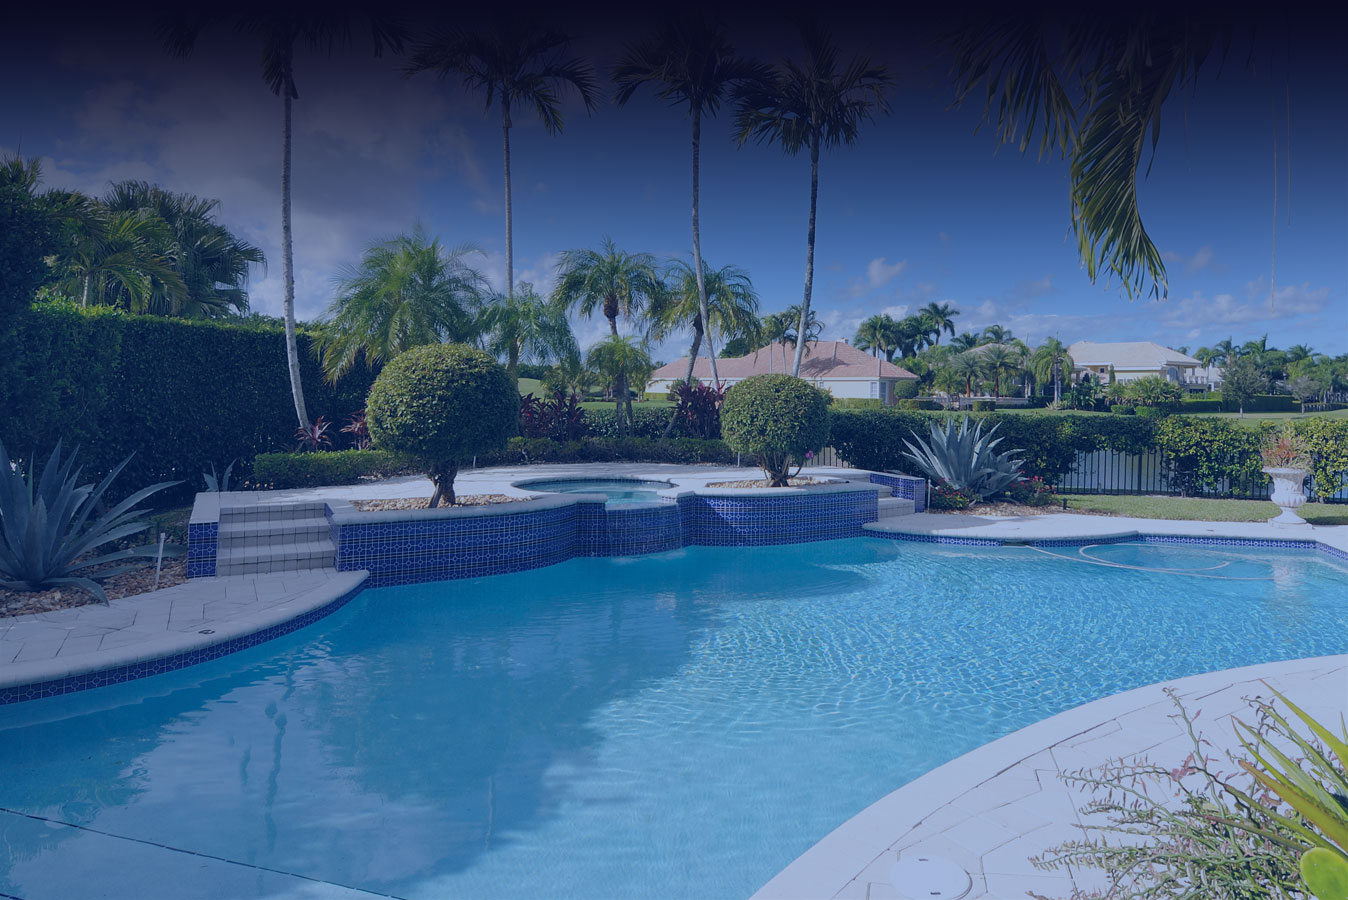 Pool Services Amp Maintenance South Miami Dade A Touch